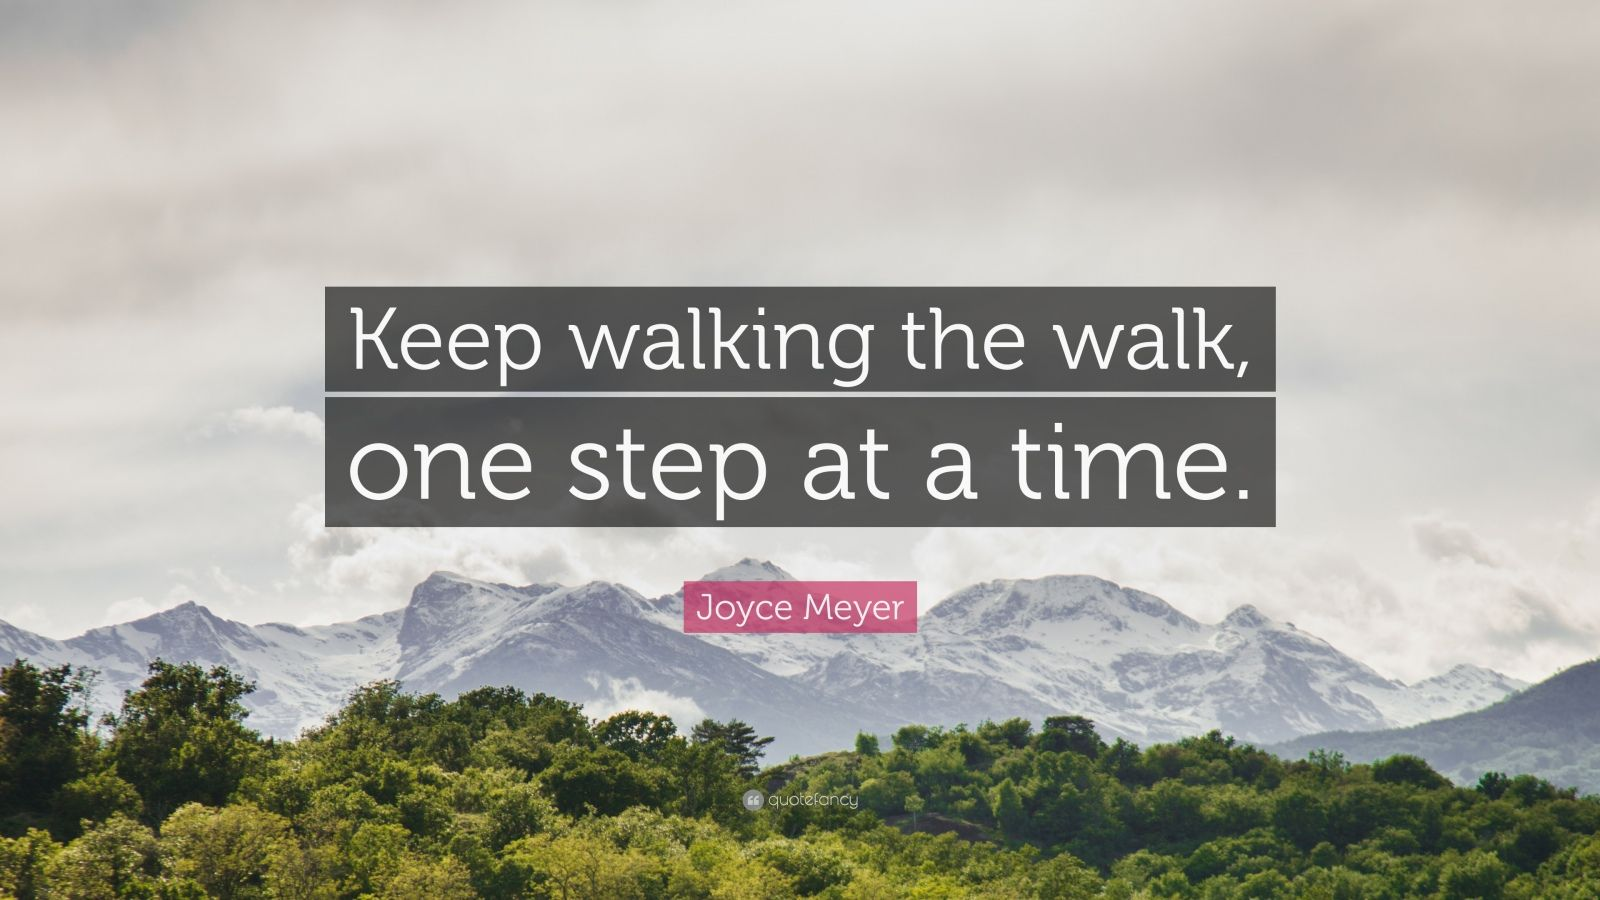 """Joyce Meyer Quote: """"Keep walking the walk, one step at a time."""""""